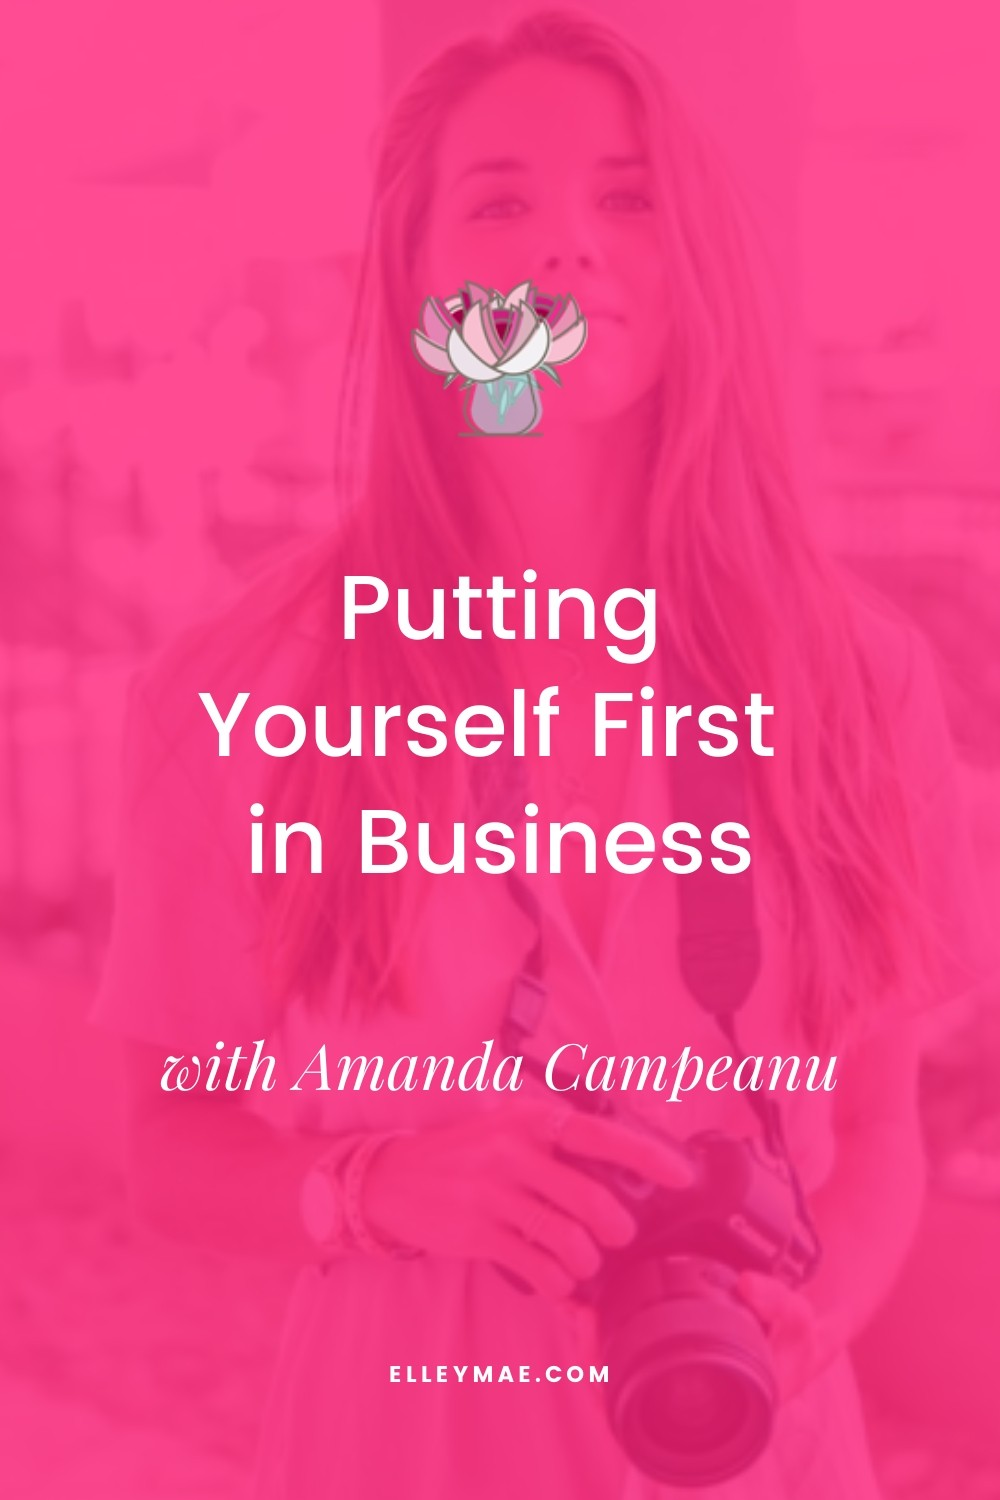 Putting Yourself First in Business with Amanda Campeanu